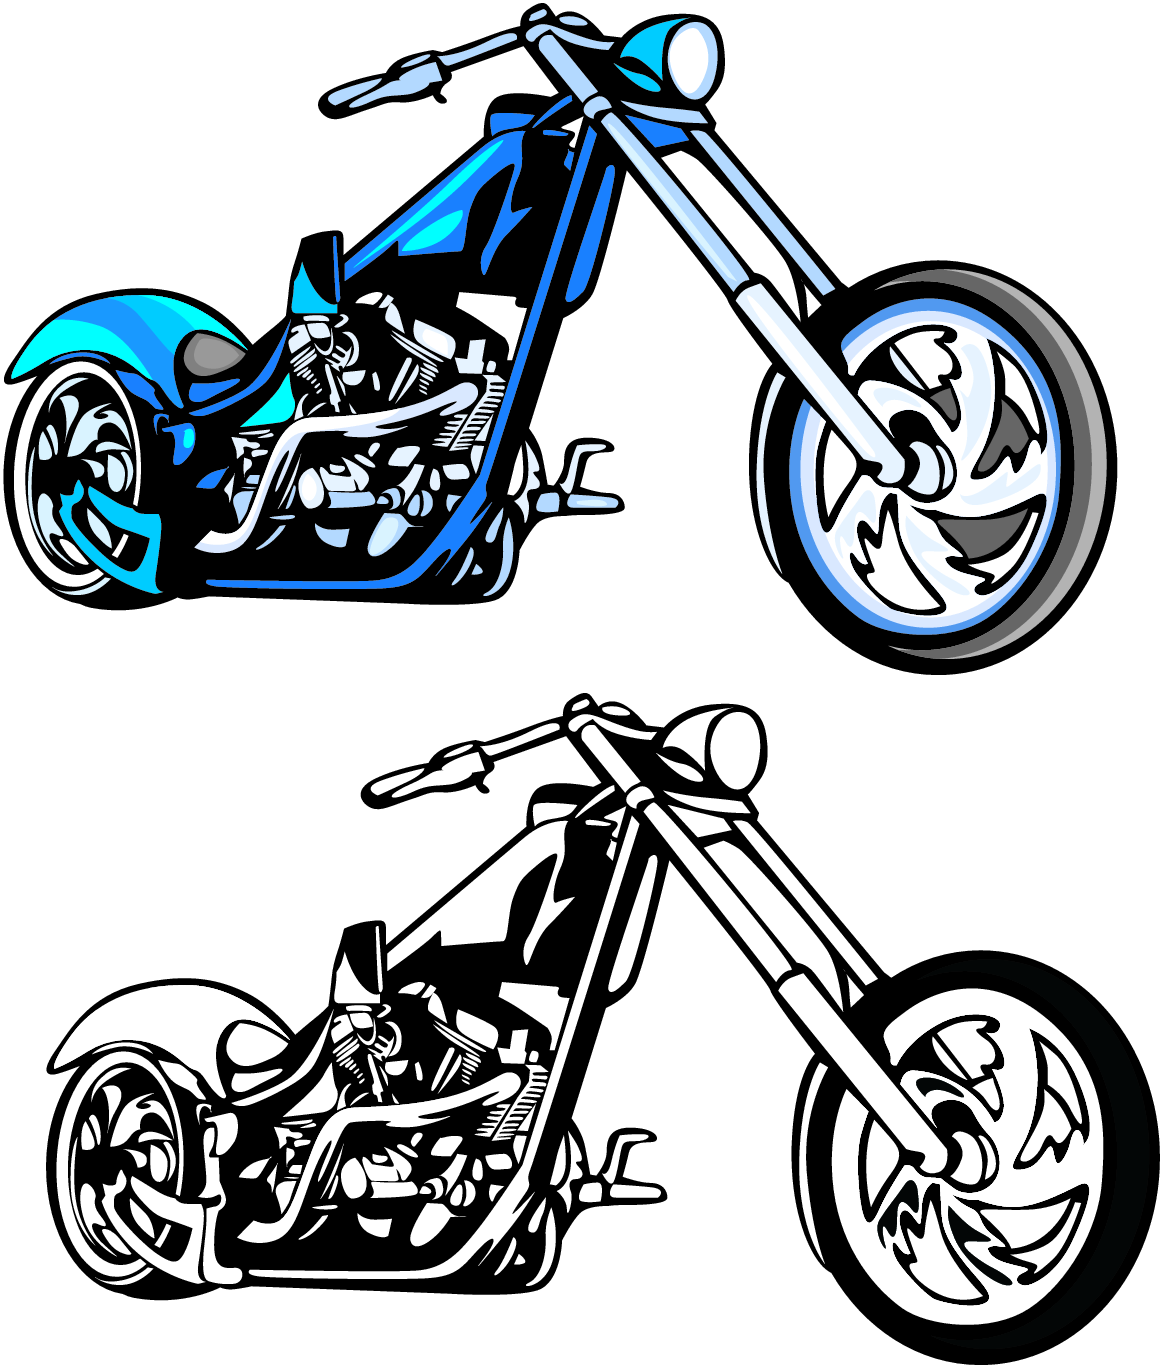 1162x1367 Motorcycle Silhouette Clipart